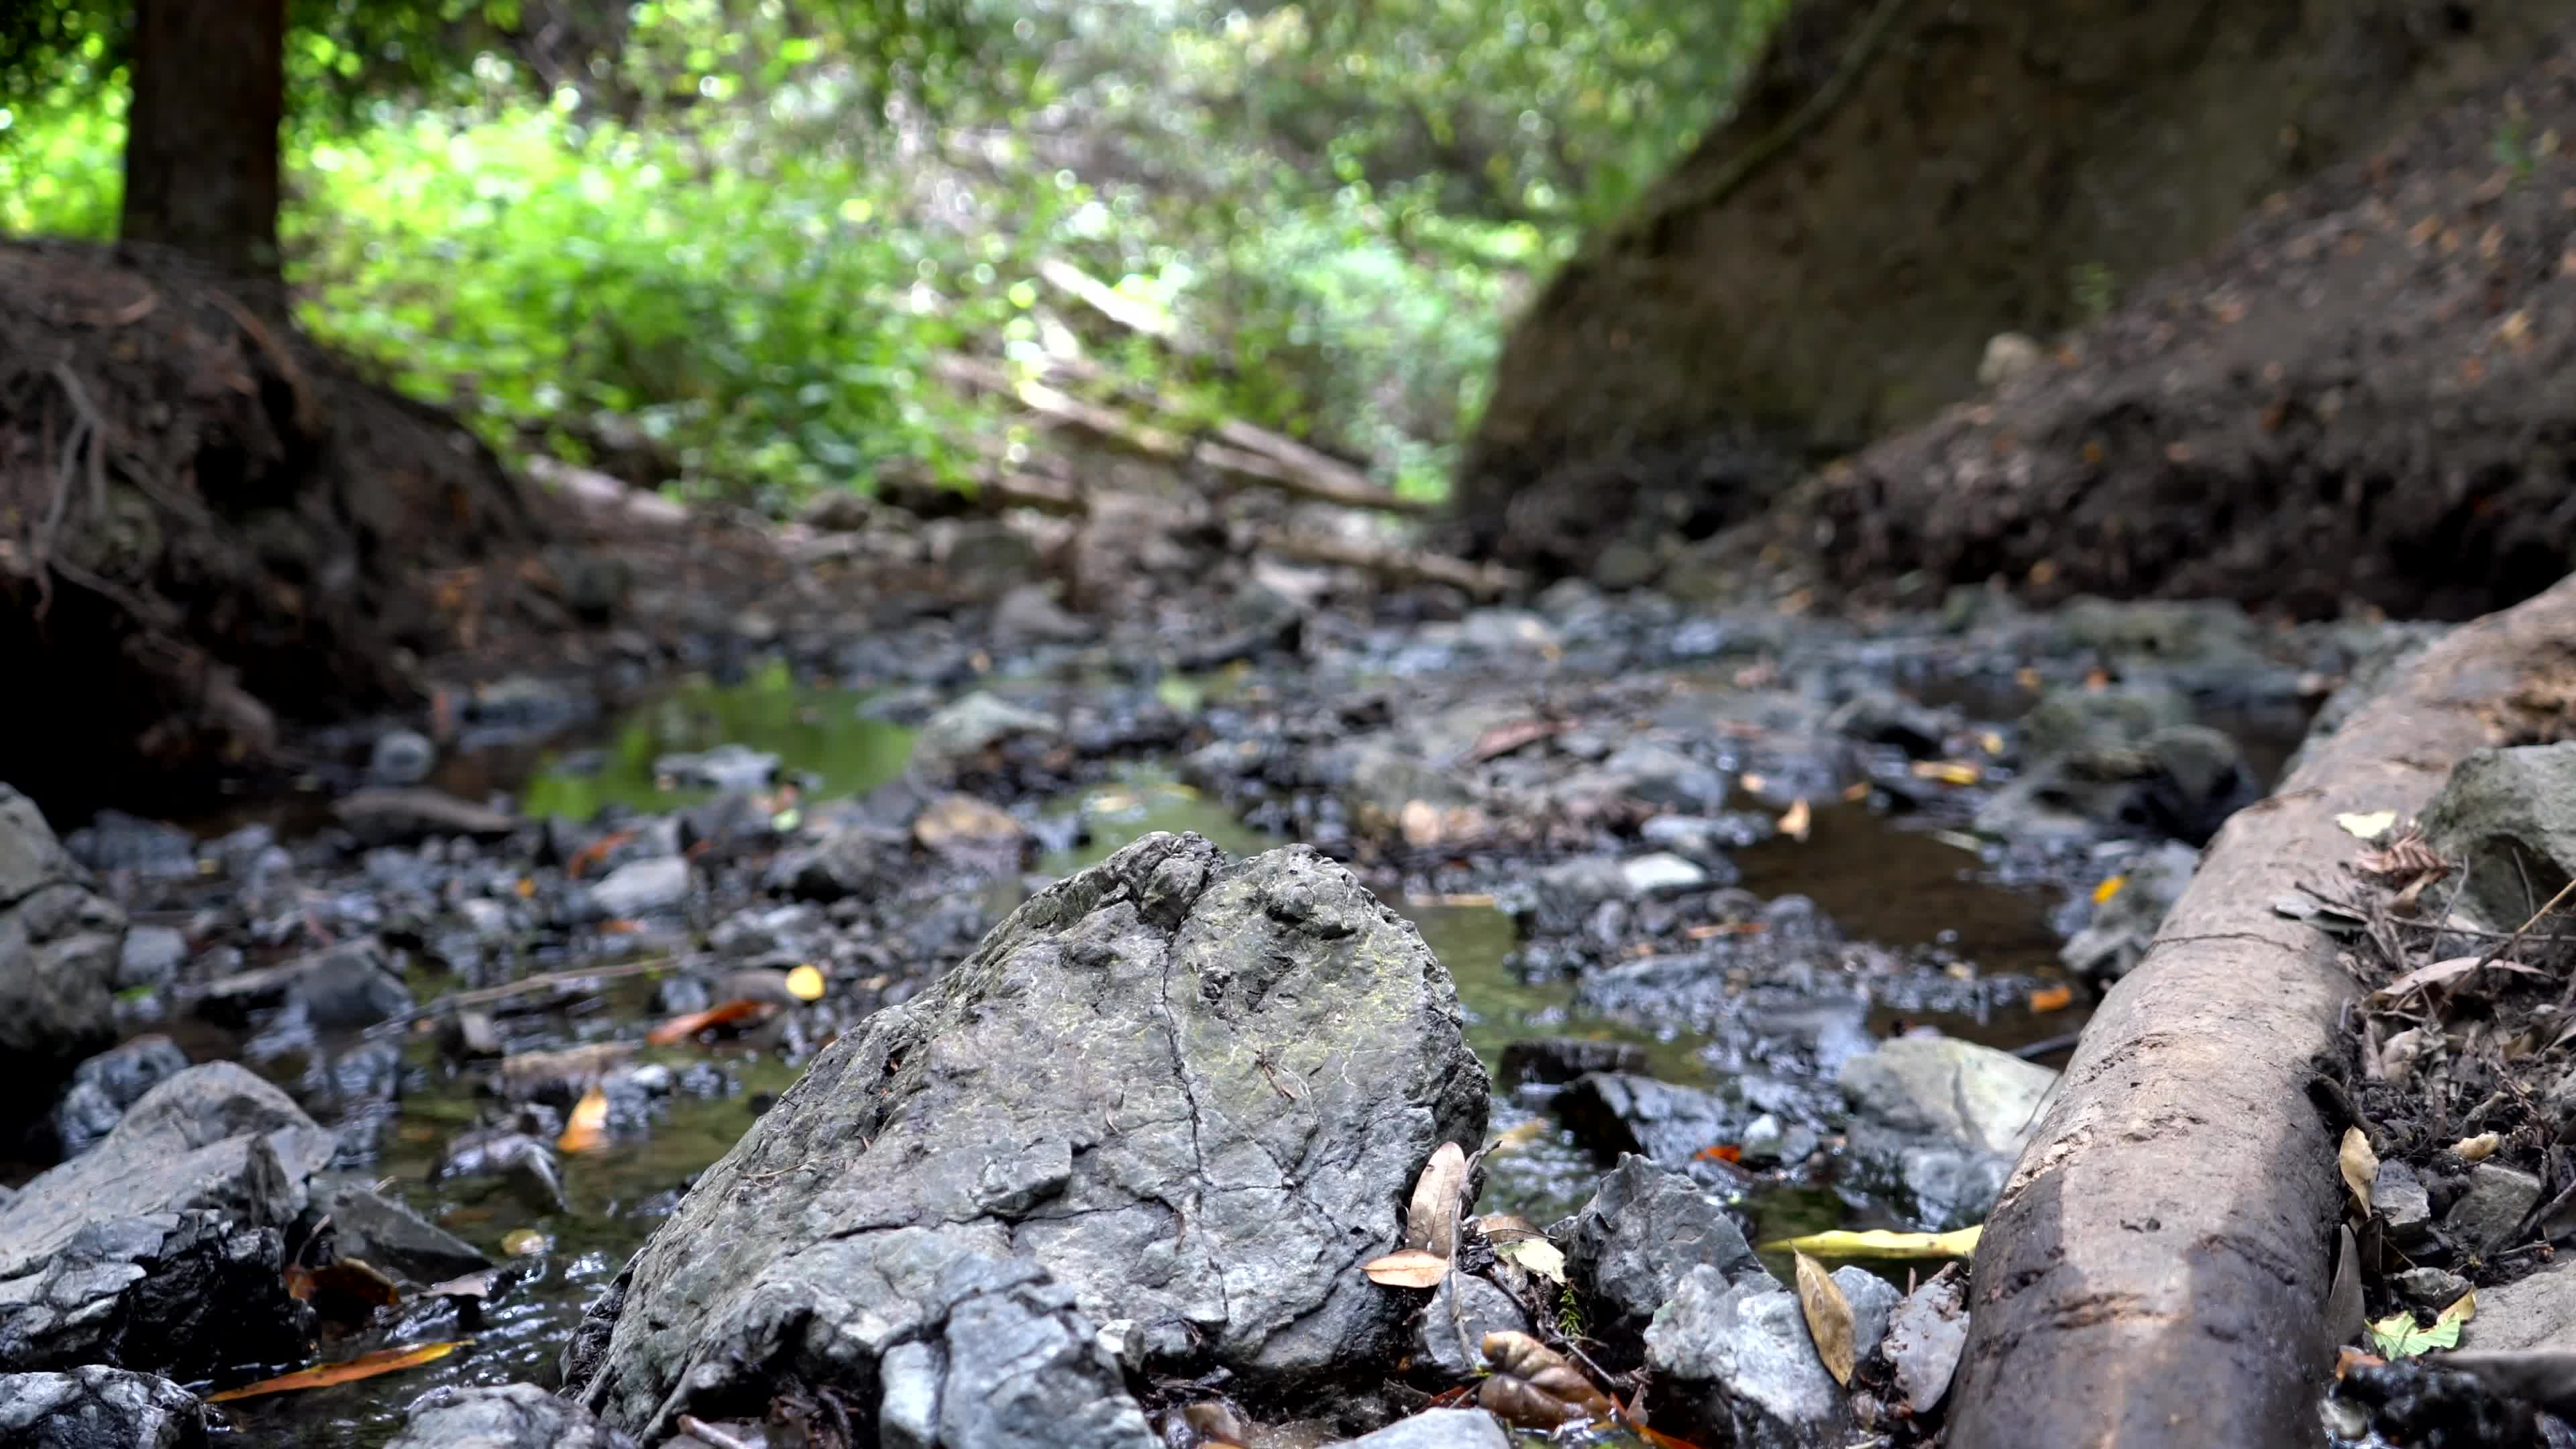 Creek, Hike, Moving Picture, Peaceful, Redwoods, Rock, Water, Woods, Peaceful Creek GIFs